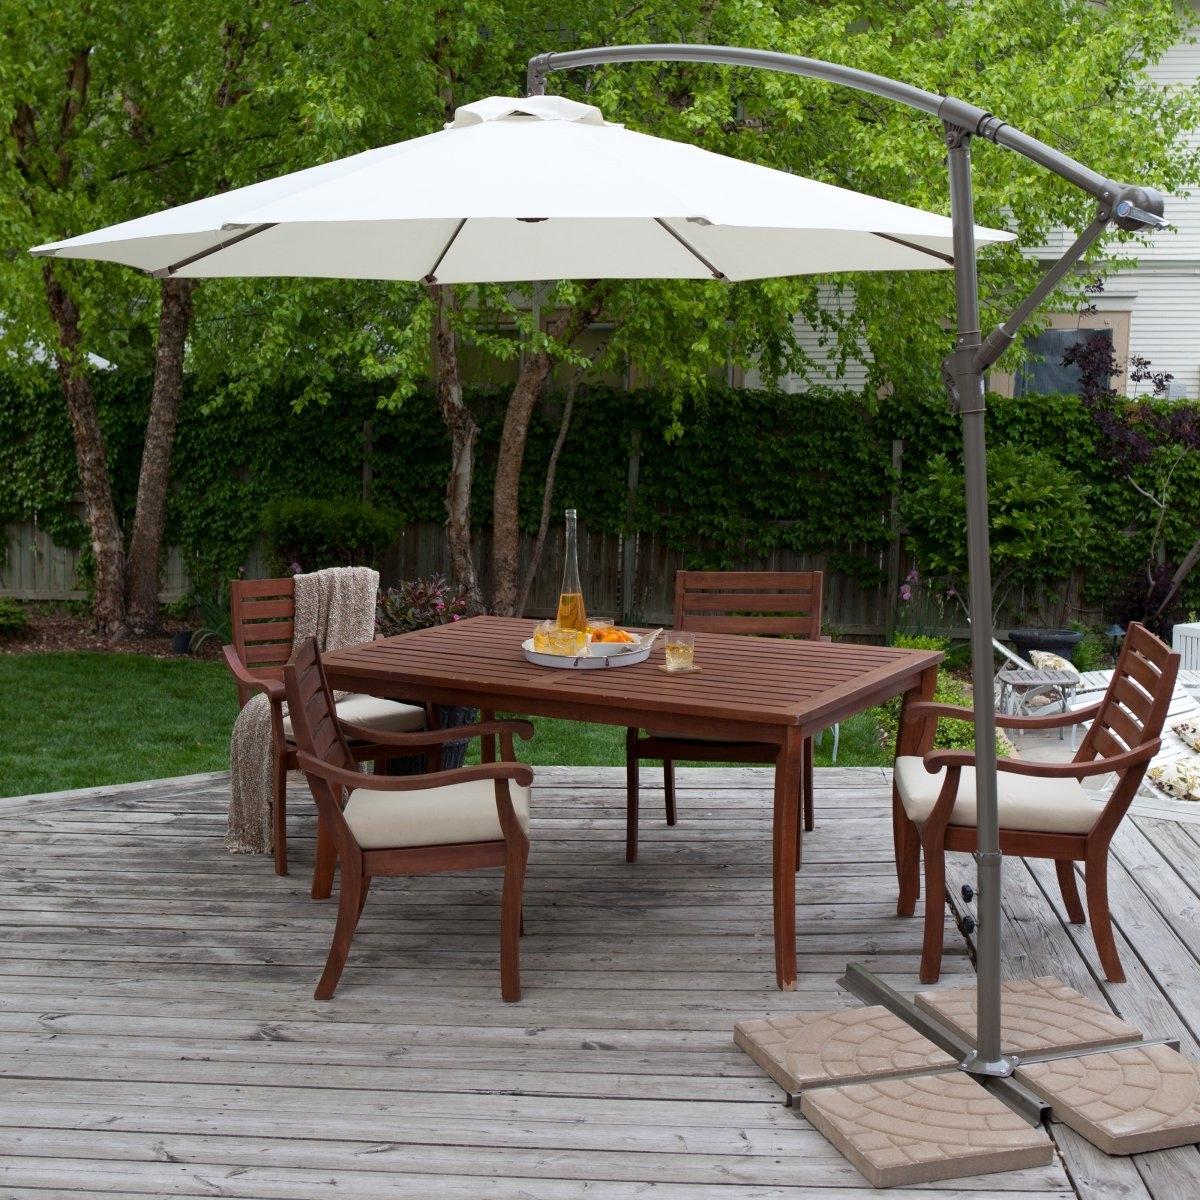 Patio Tables With Umbrella Hole With Regard To Most Up To Date The Patio Table Umbrella For Comfort Gathering — Mistikcamping Home (View 19 of 20)